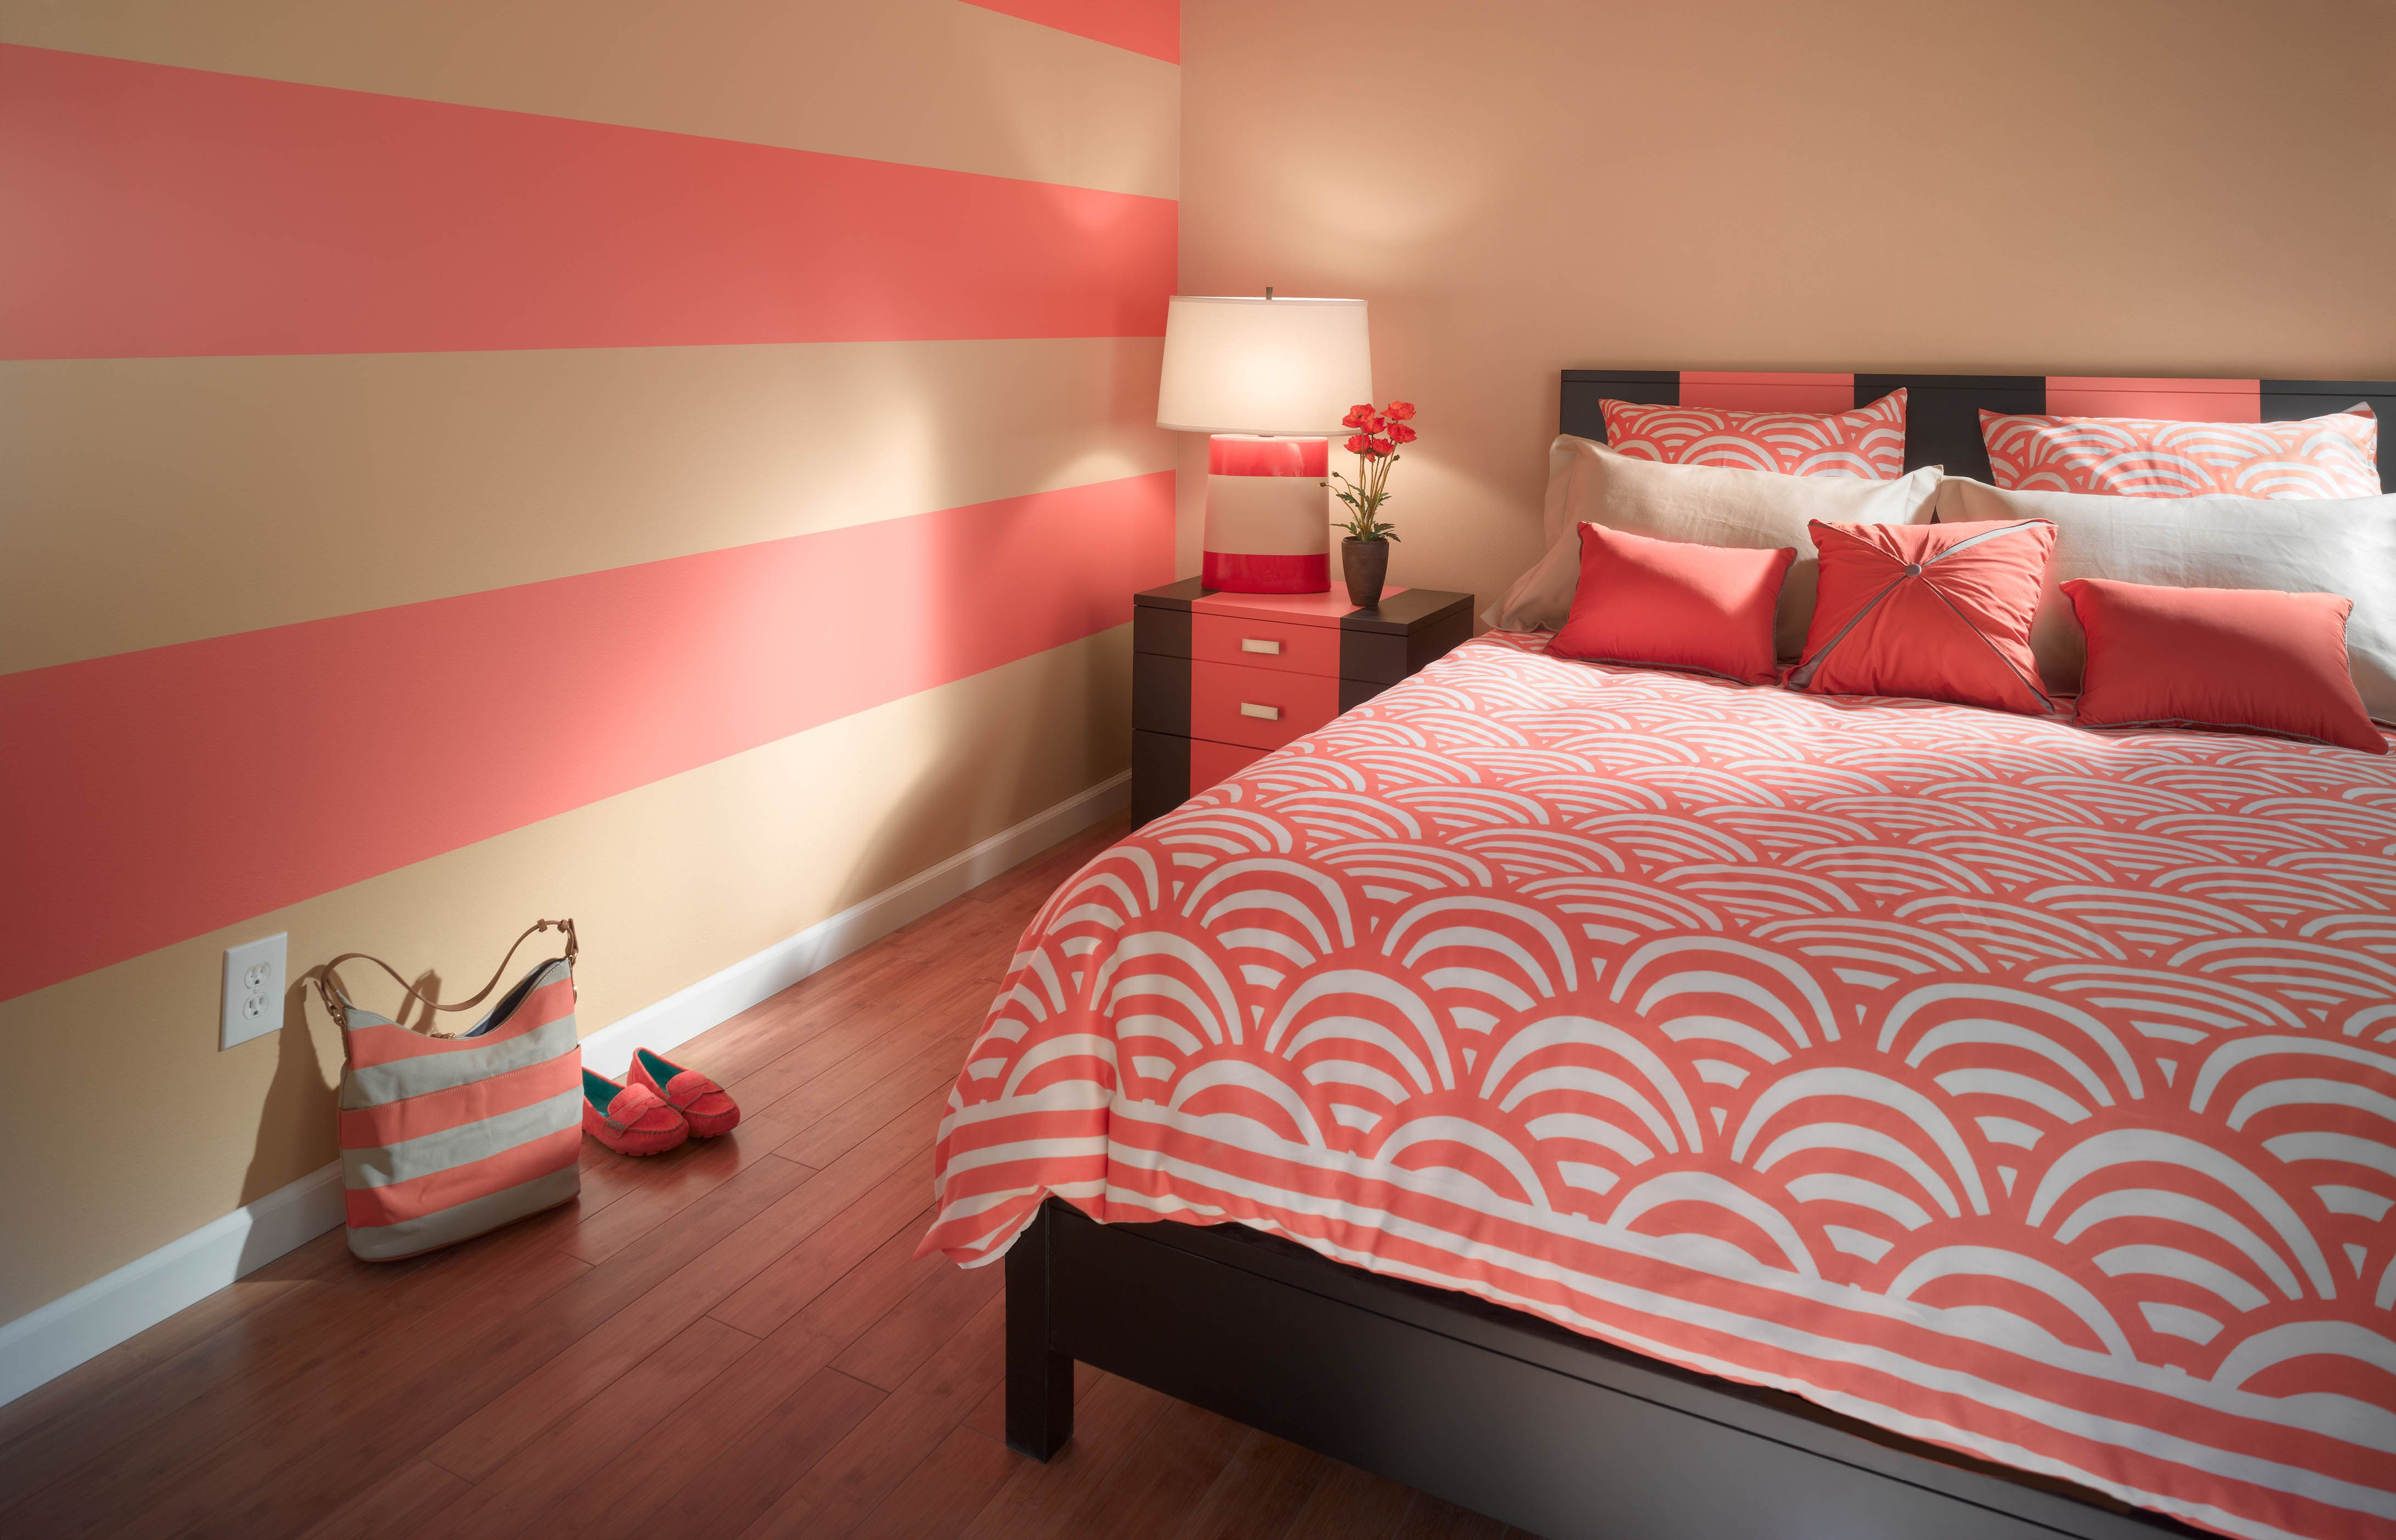 Stripes Never Go Out Of Style Interior Striped Walls